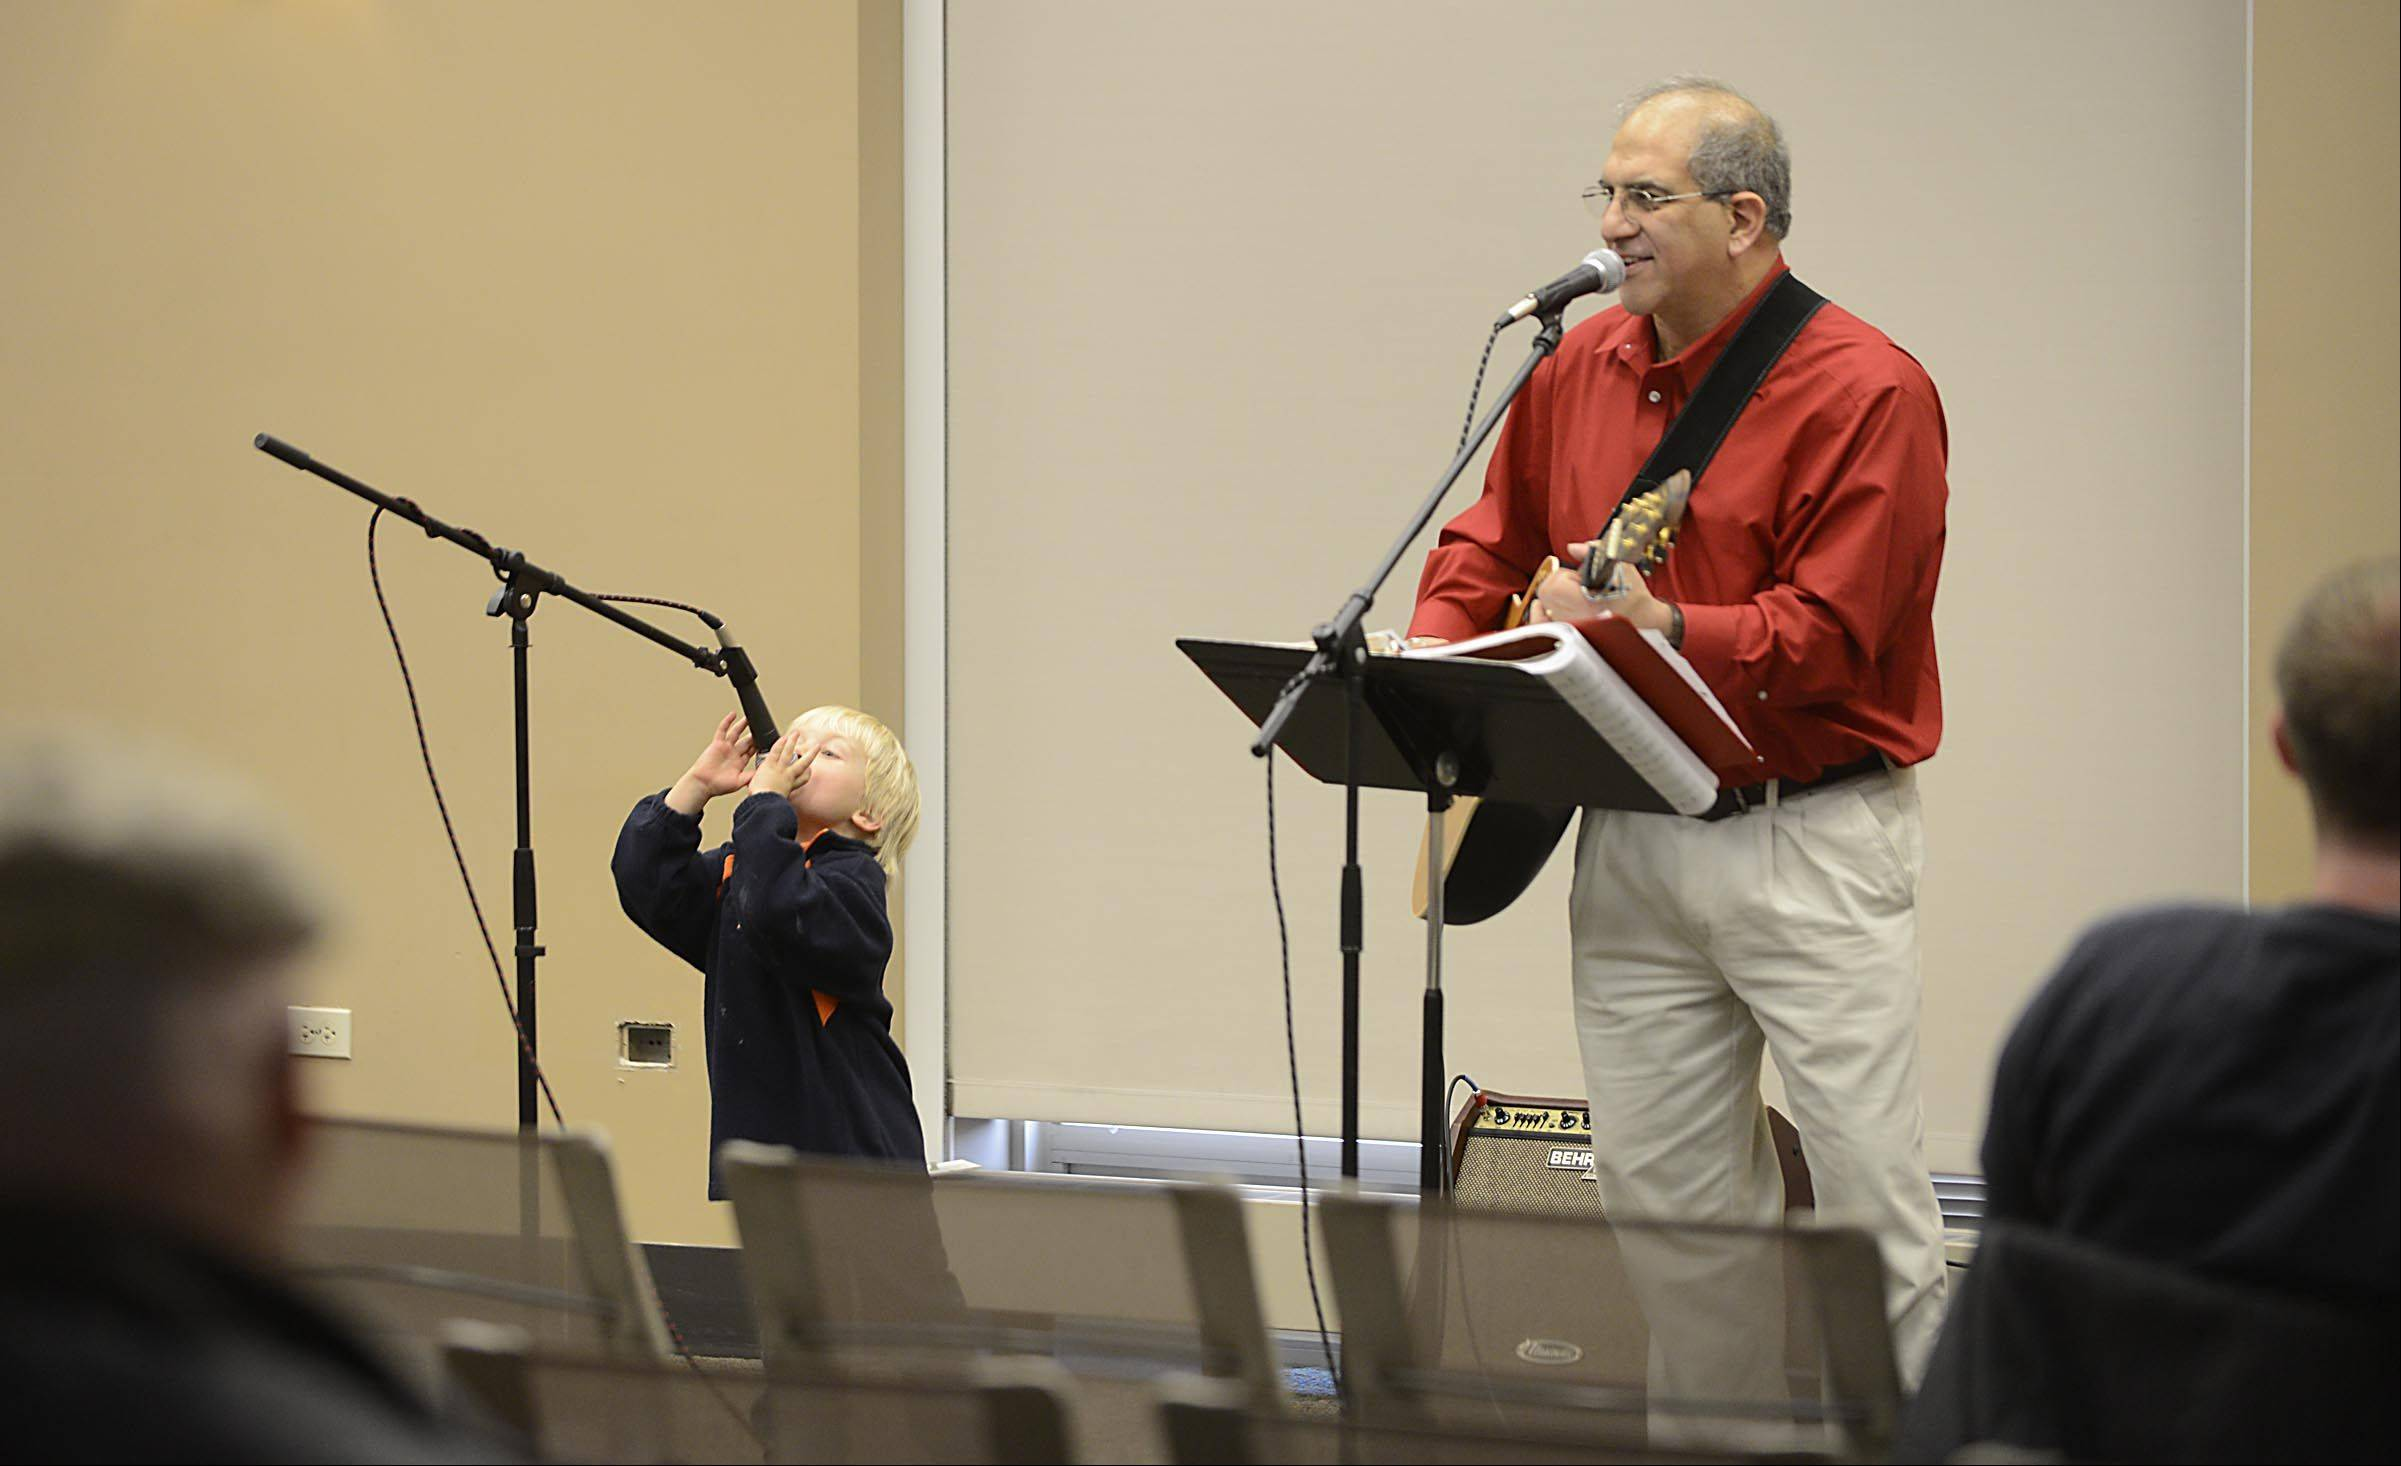 Musician Tom Malouf sings Christmas carols Sunday as Miles Carlson, 3, joins him from his front row seat at the Batavia Public Library. Miles� mother Jodi, of Batavia, said, �He�s got the spirit!�